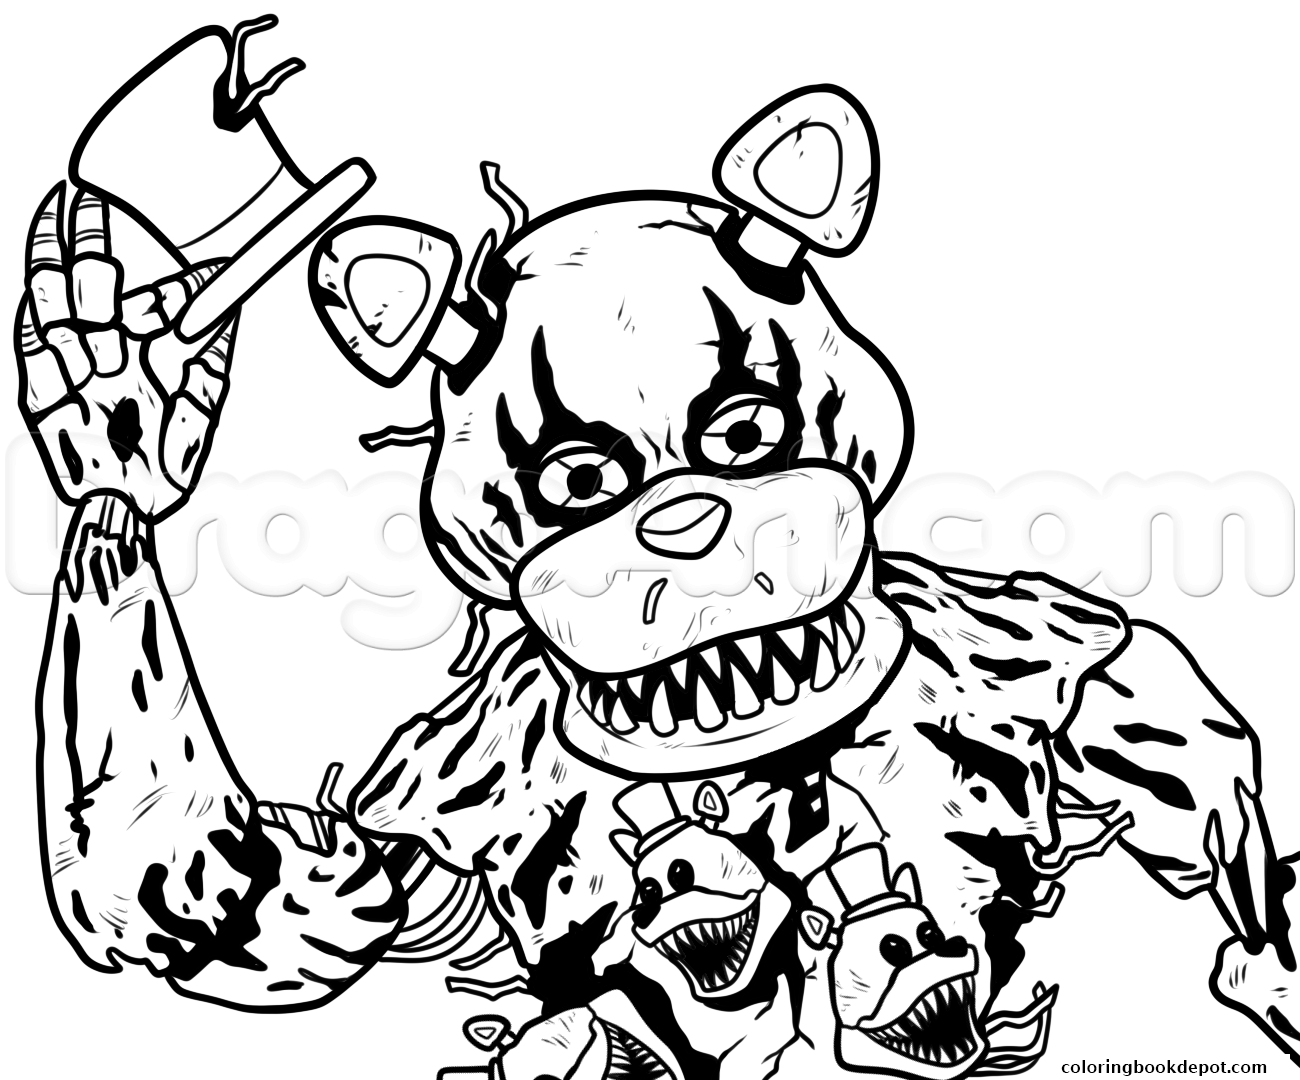 fnaf 3 drawing at getdrawings com free for personal use fnaf 3